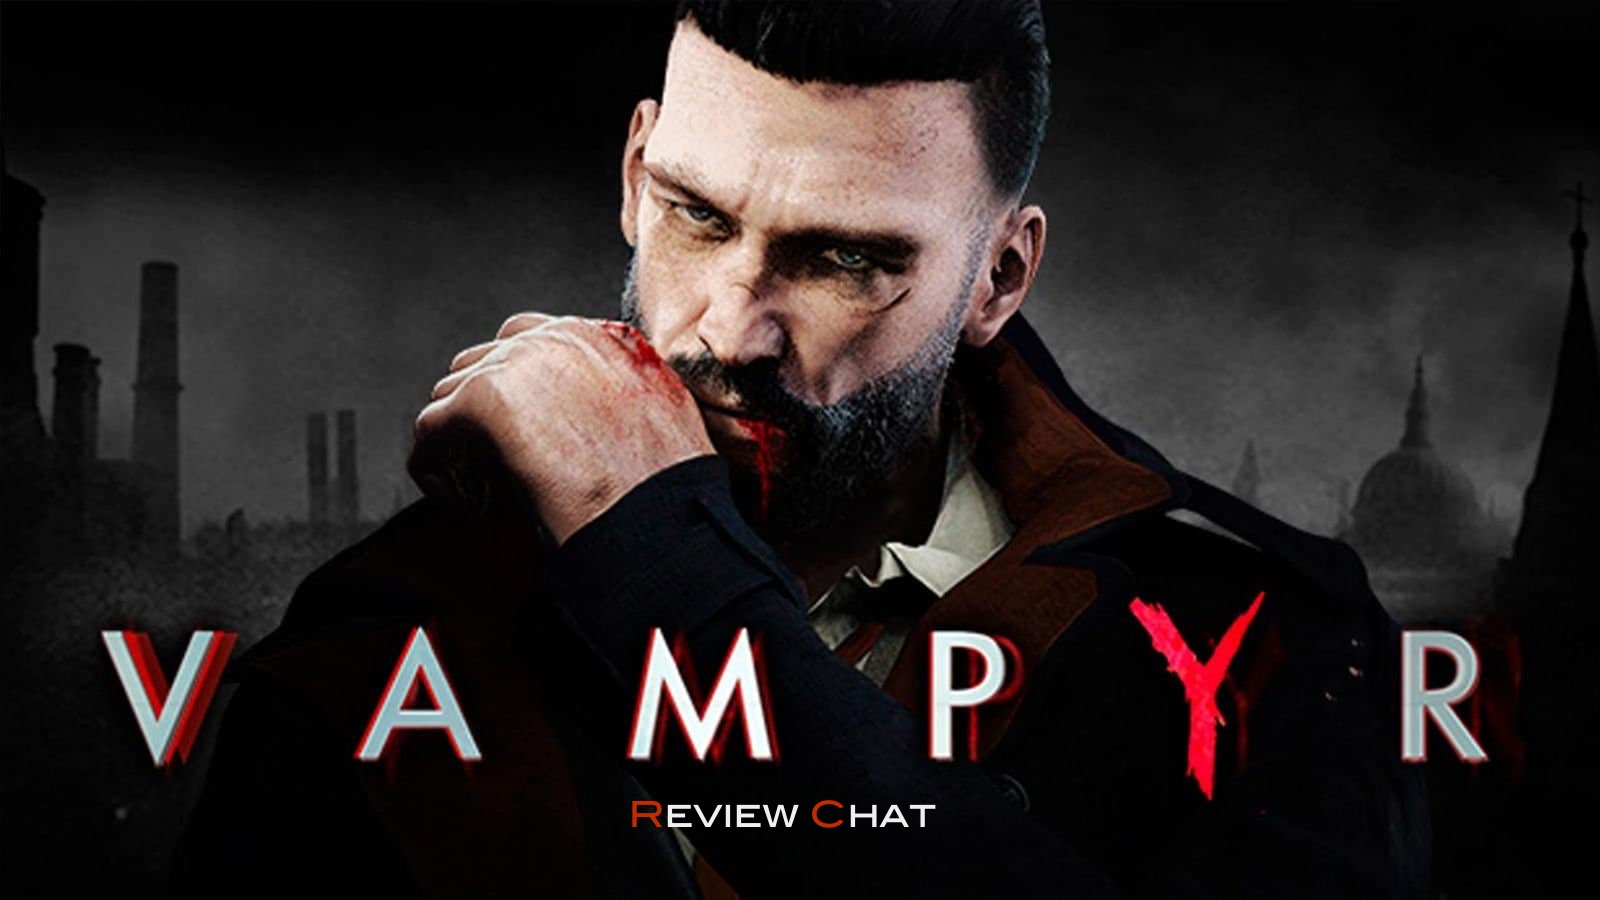 Vampyr | Review Chat